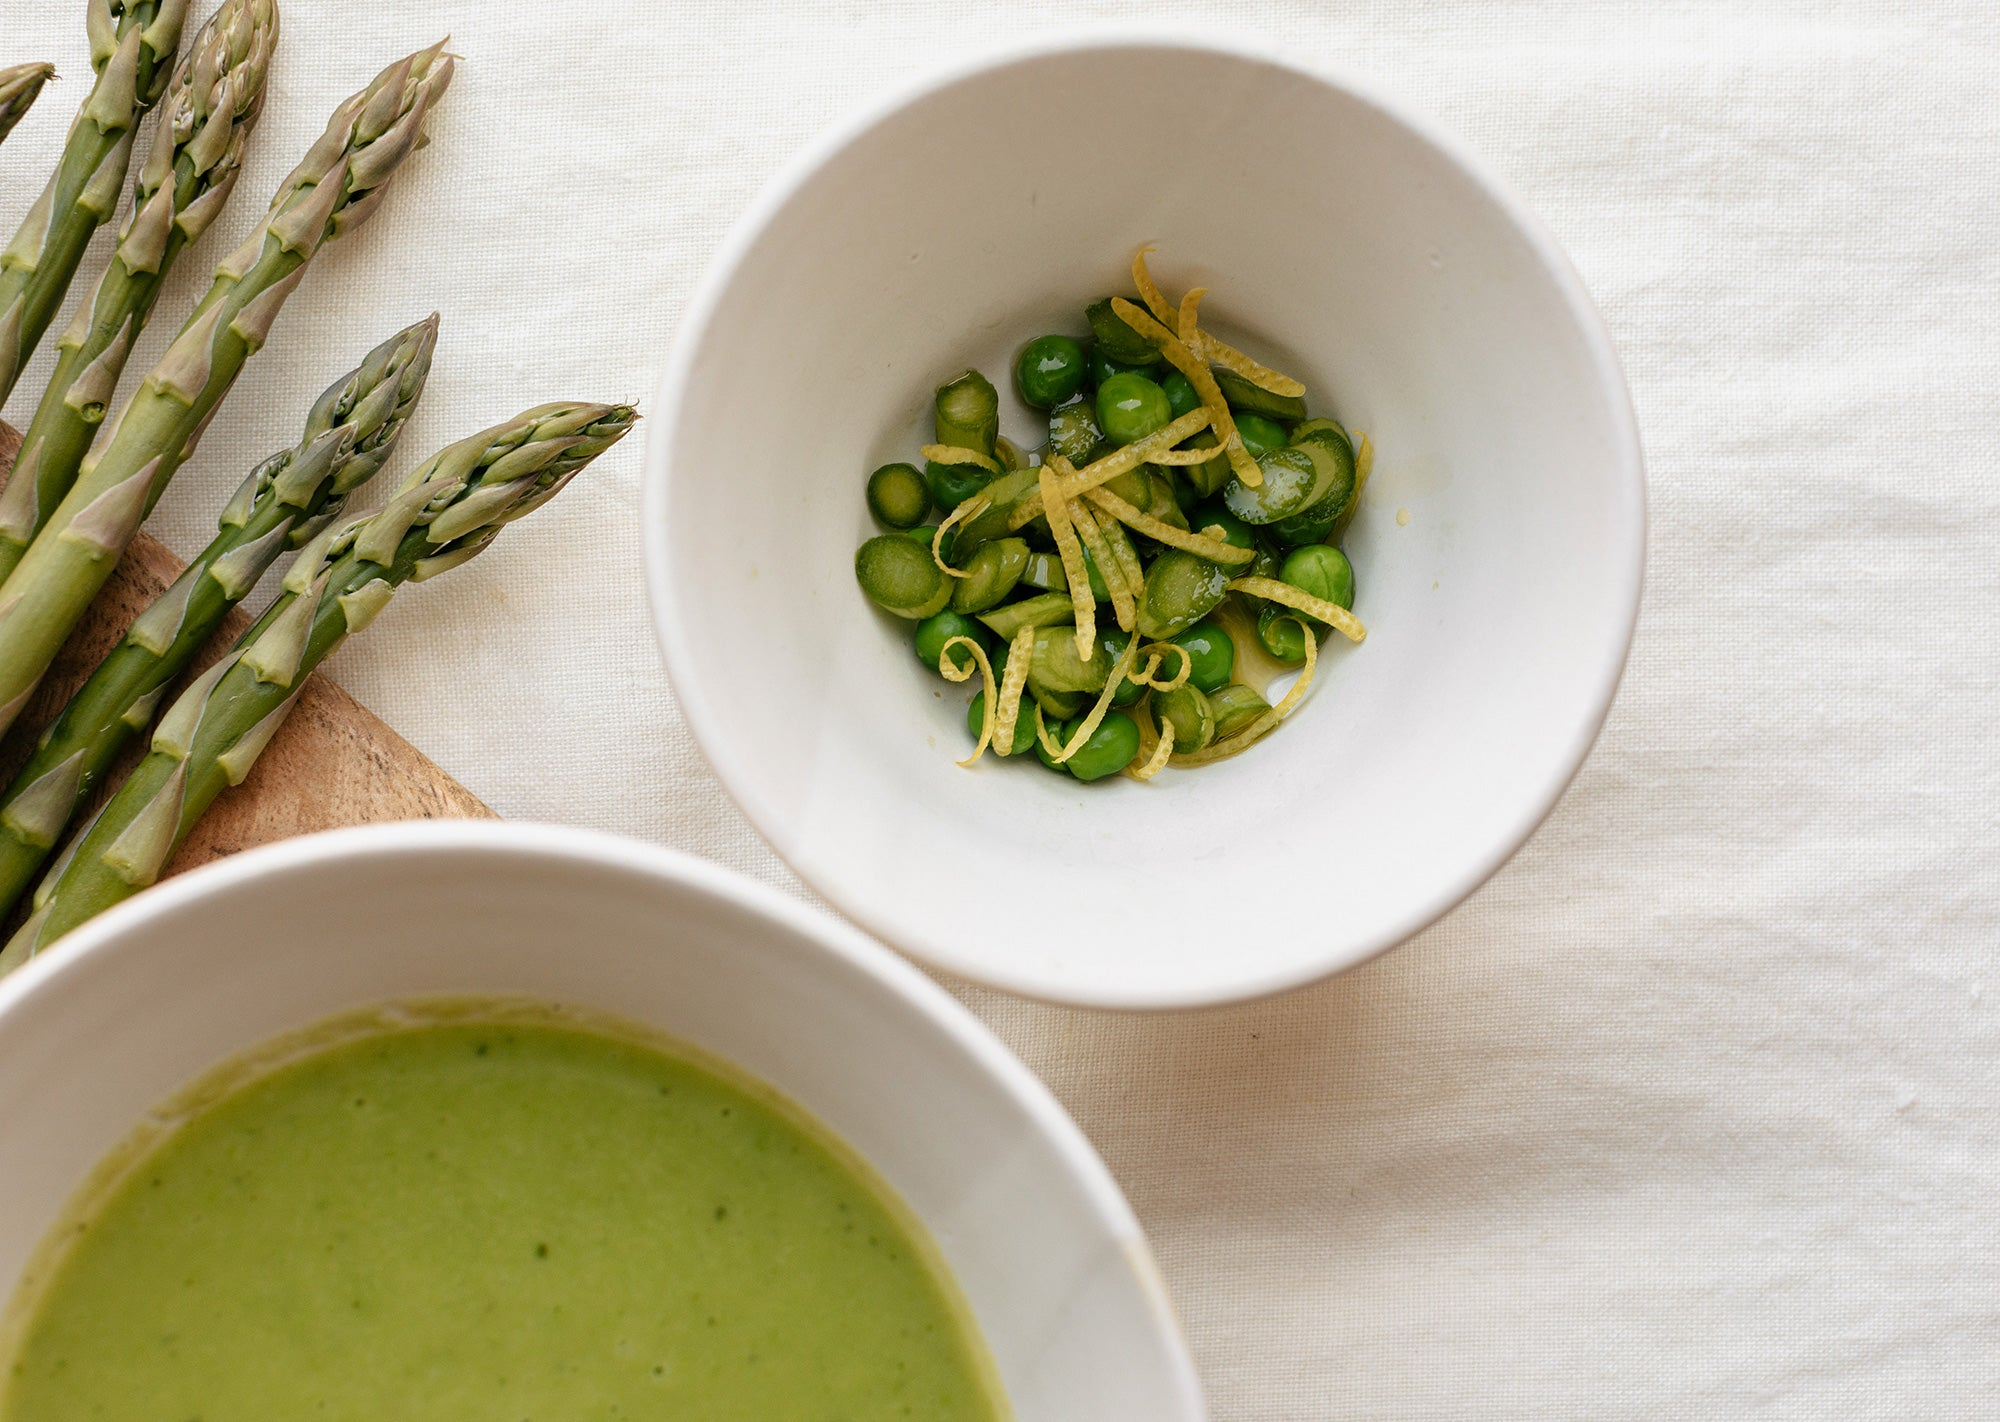 Pea and asparagus soup lifestyle image 01